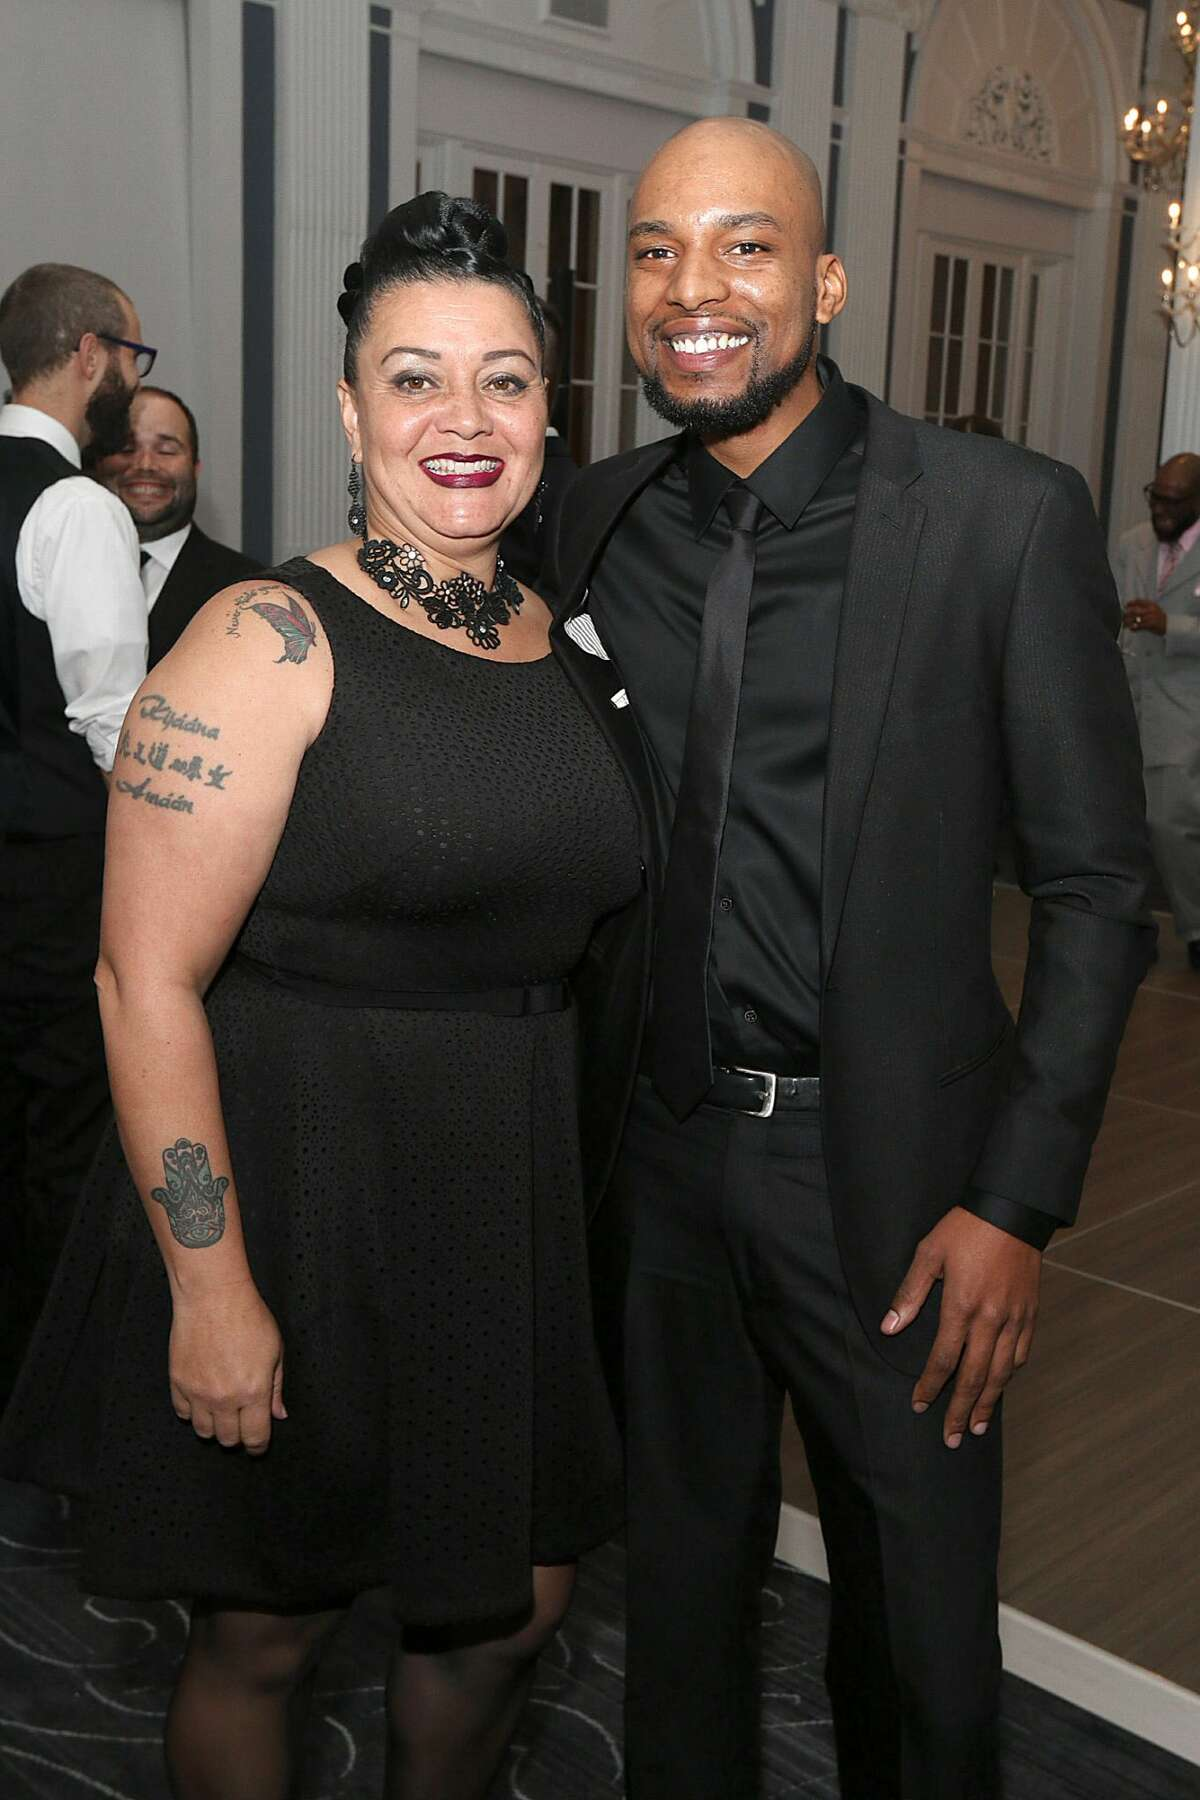 Were you Seen at the 9th Annual Red, White & Chocolate Gala, a benefit for the Boys & Girls Clubs of Albany held at Renaissance Albany Hotel on Thursday, Nov. 17, 2016?